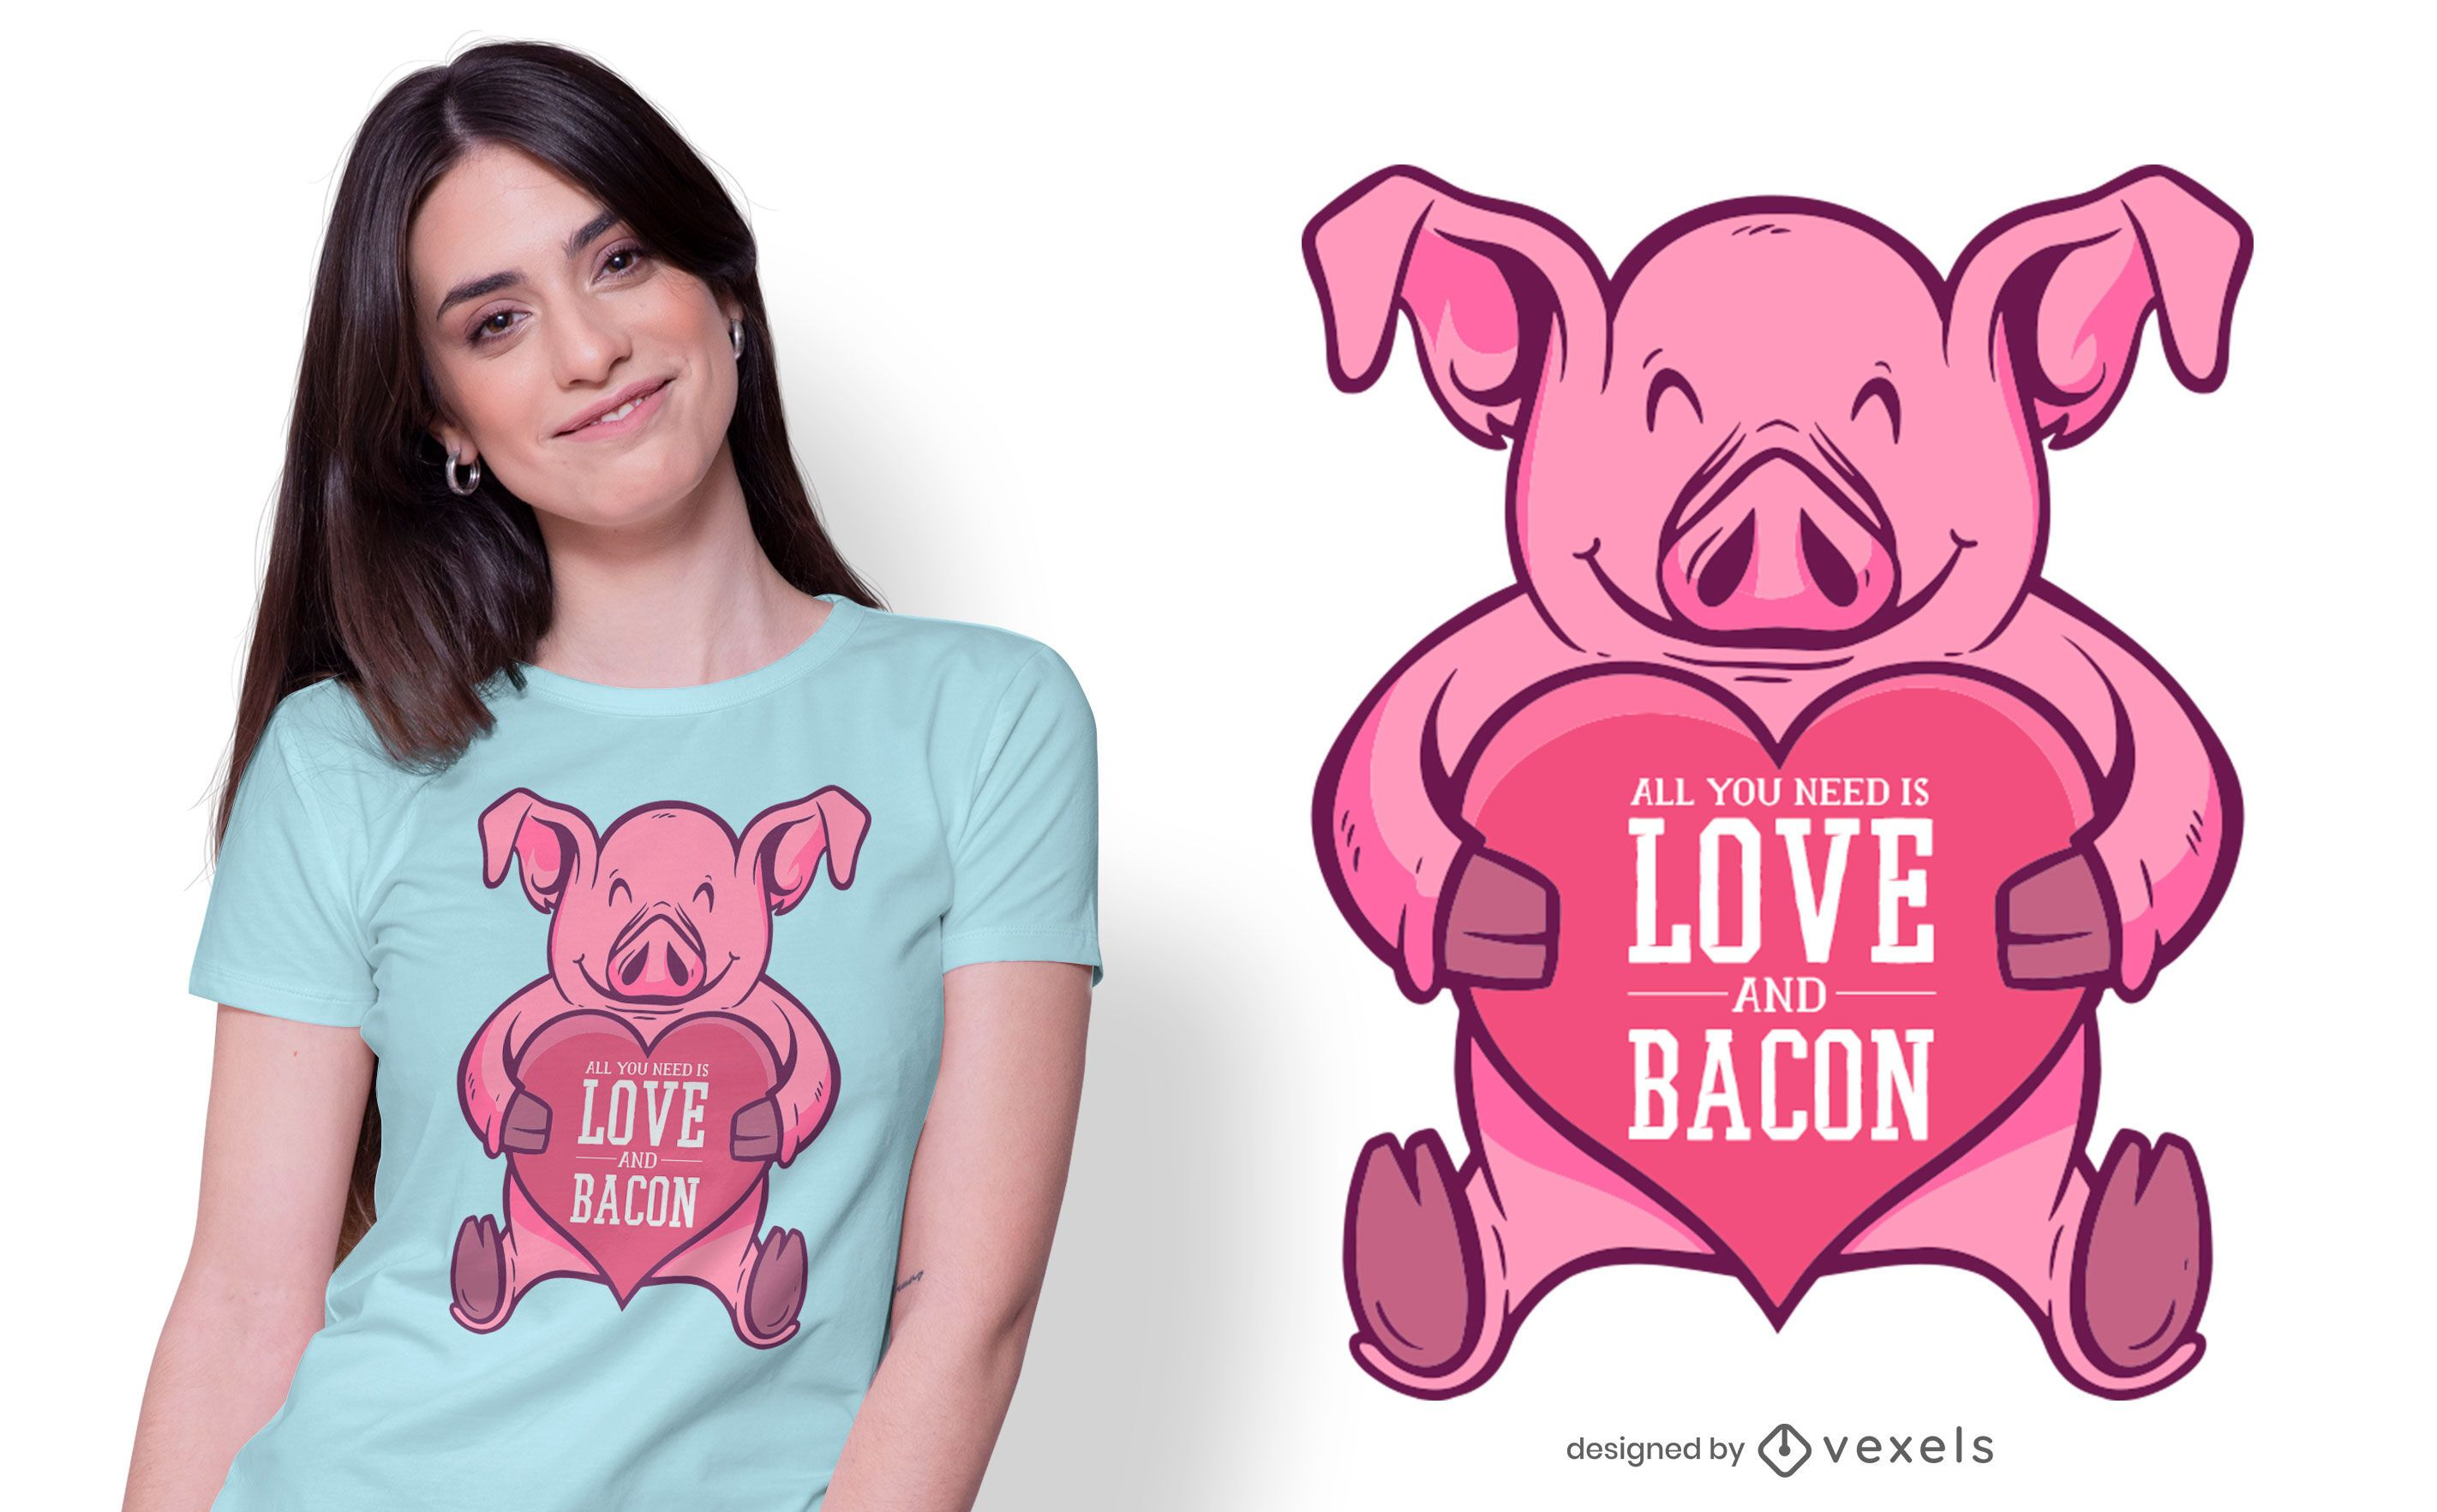 Love and bacon t-shirt design